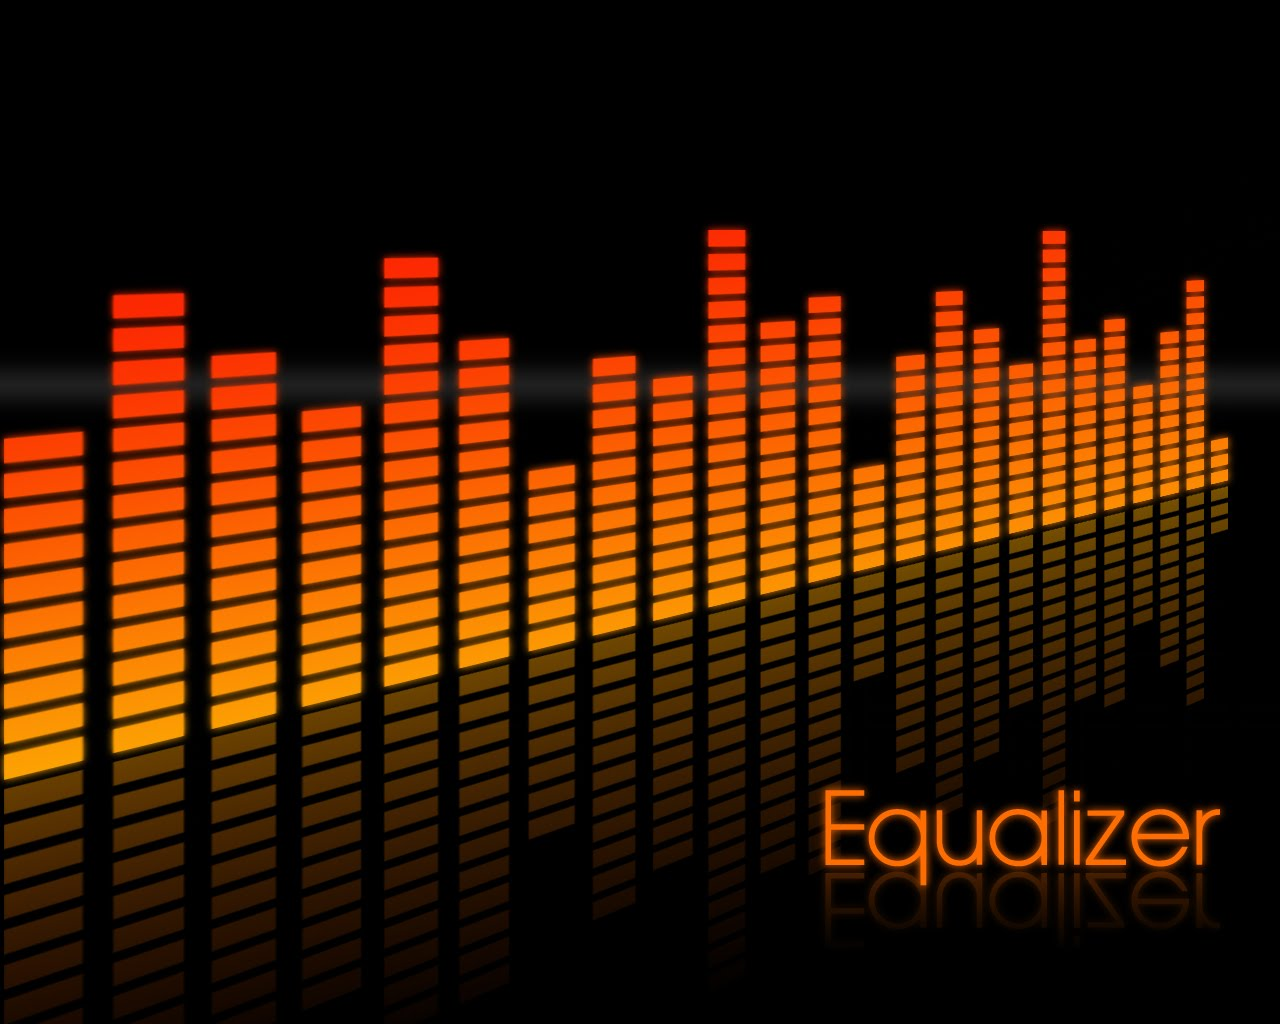 Music Equalizer Wallpaper: Club 4 Buzz: Music Wallpaper